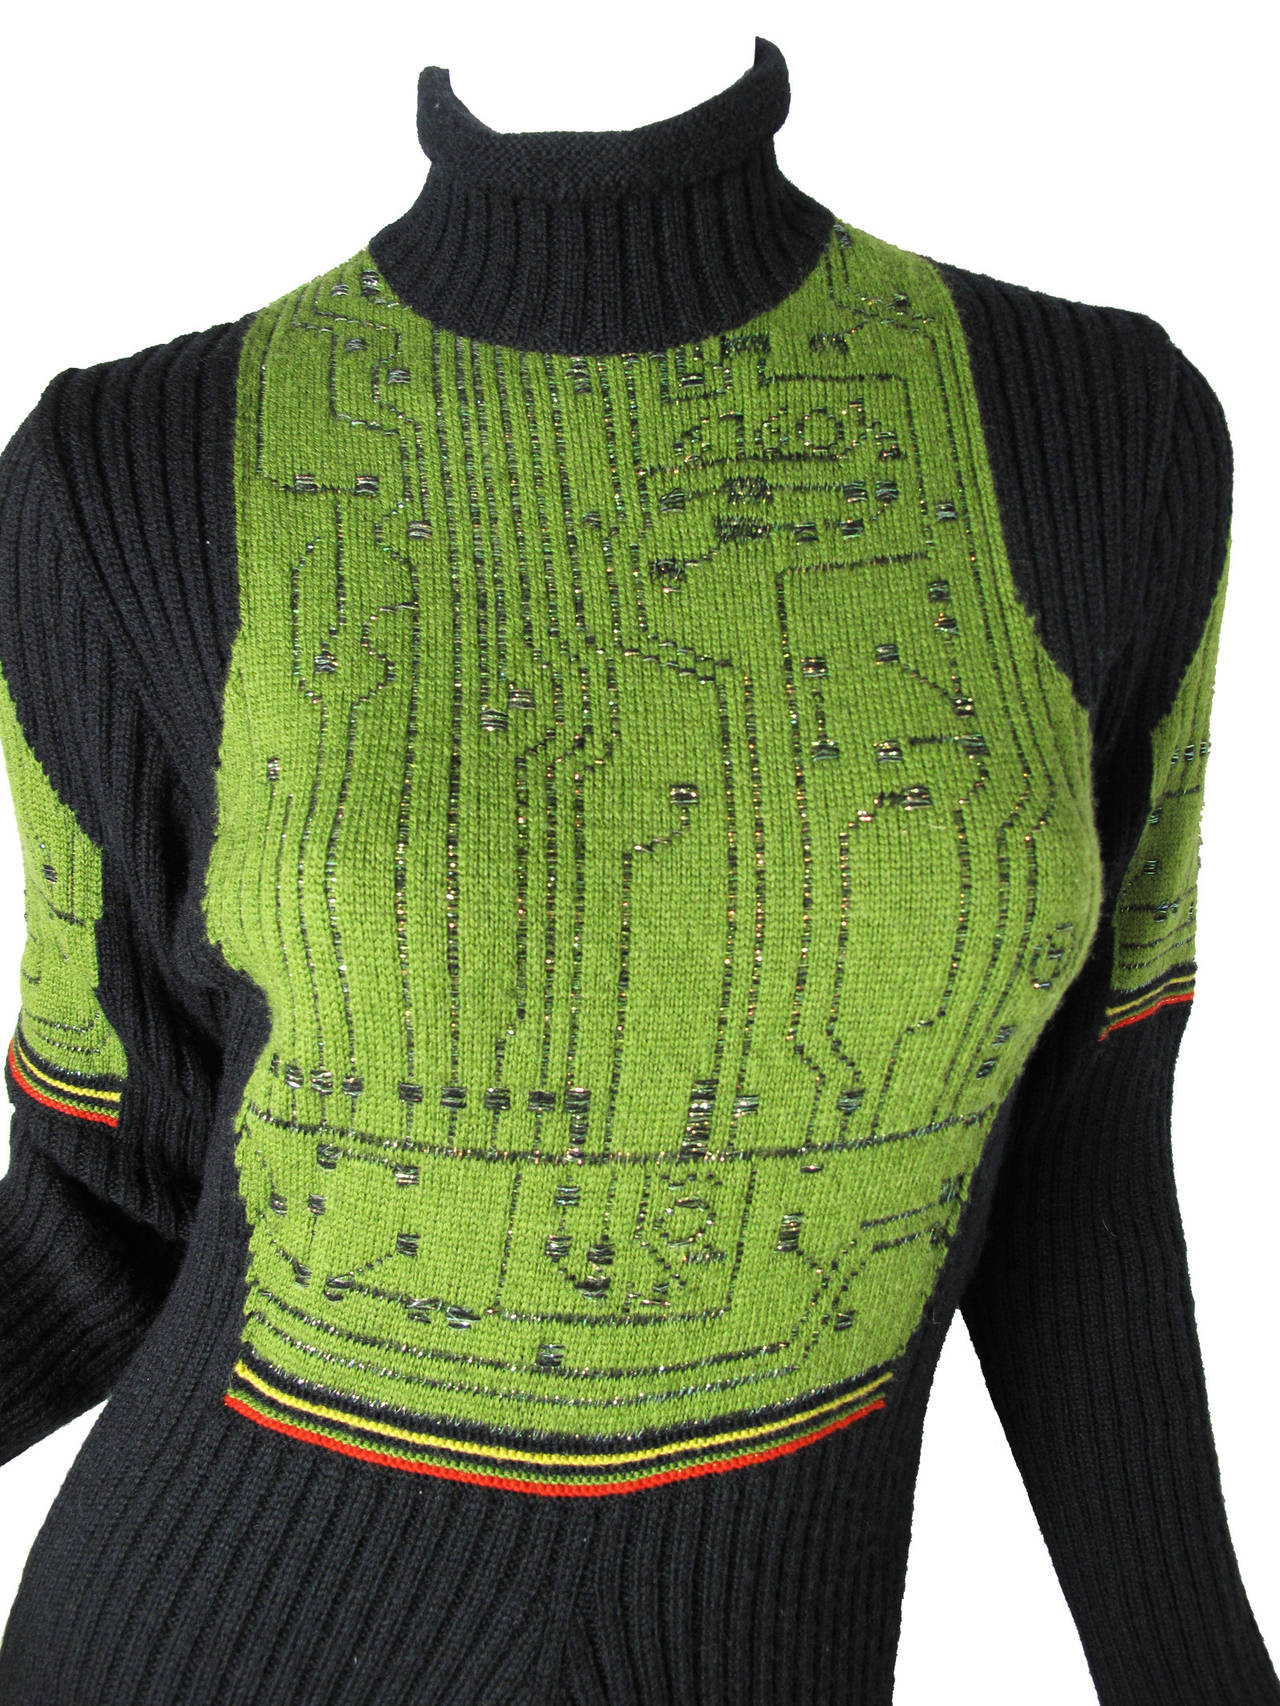 1990s Jean Paul Gaultier black wool knit dress with circuit board pattern.  Condition: Excellent.   31